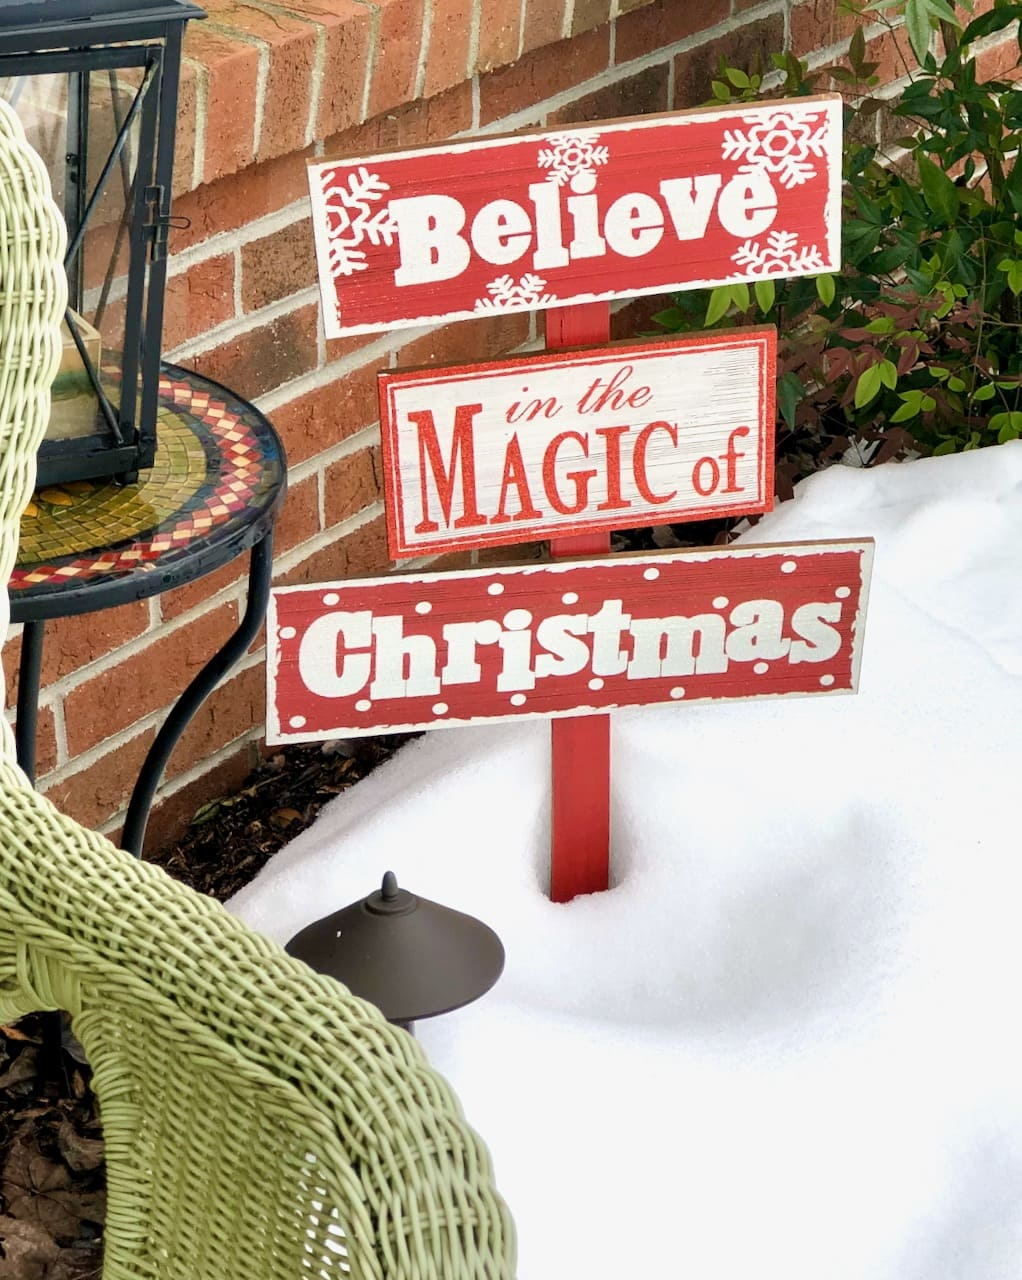 sign that says 'believe in the magic of Christmas'